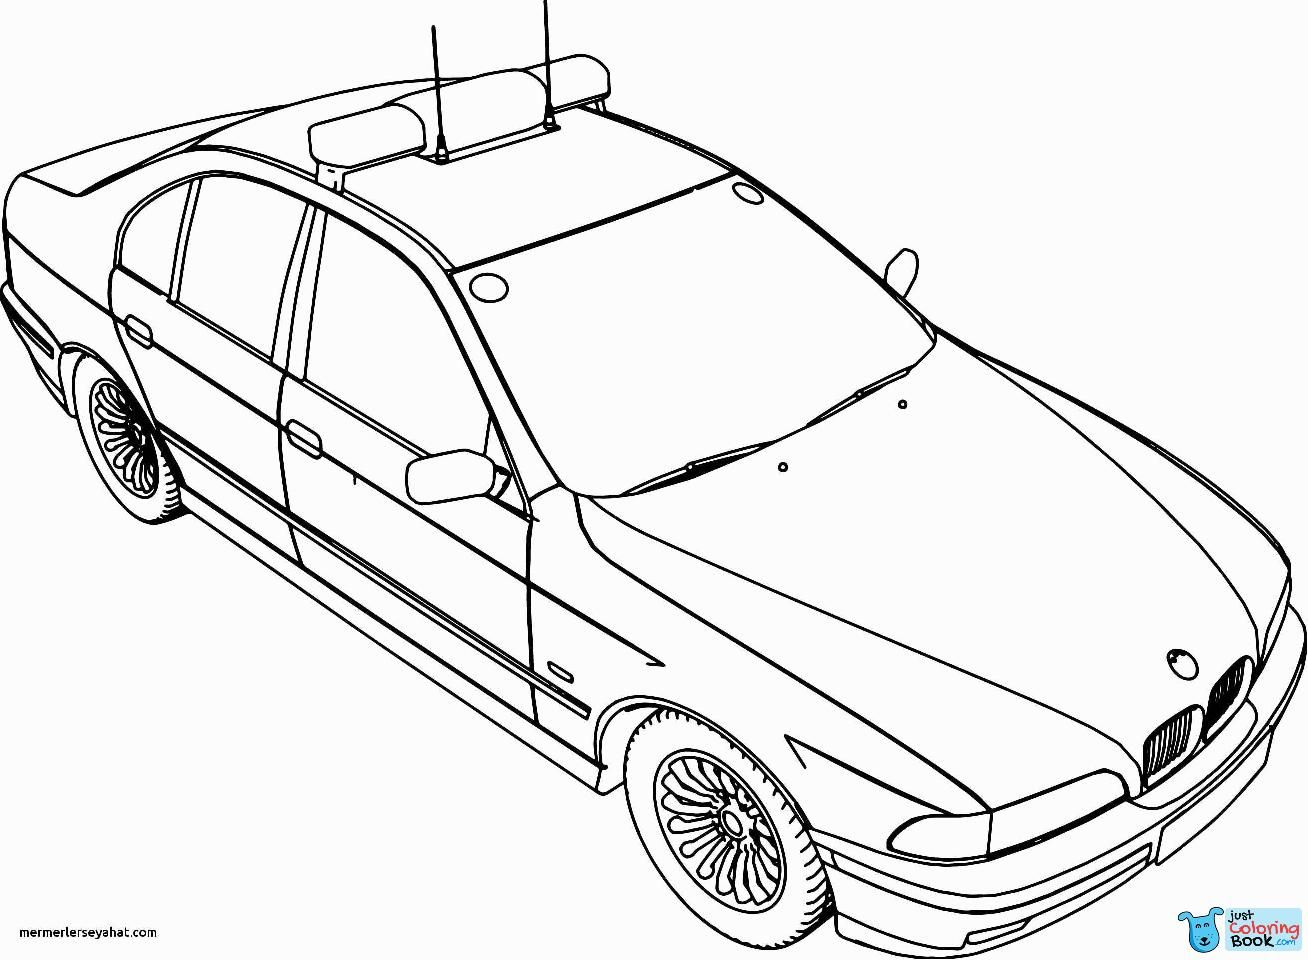 - Car Coloring Page Fresh Ausmalbilder Cars Ausdrucken Sports